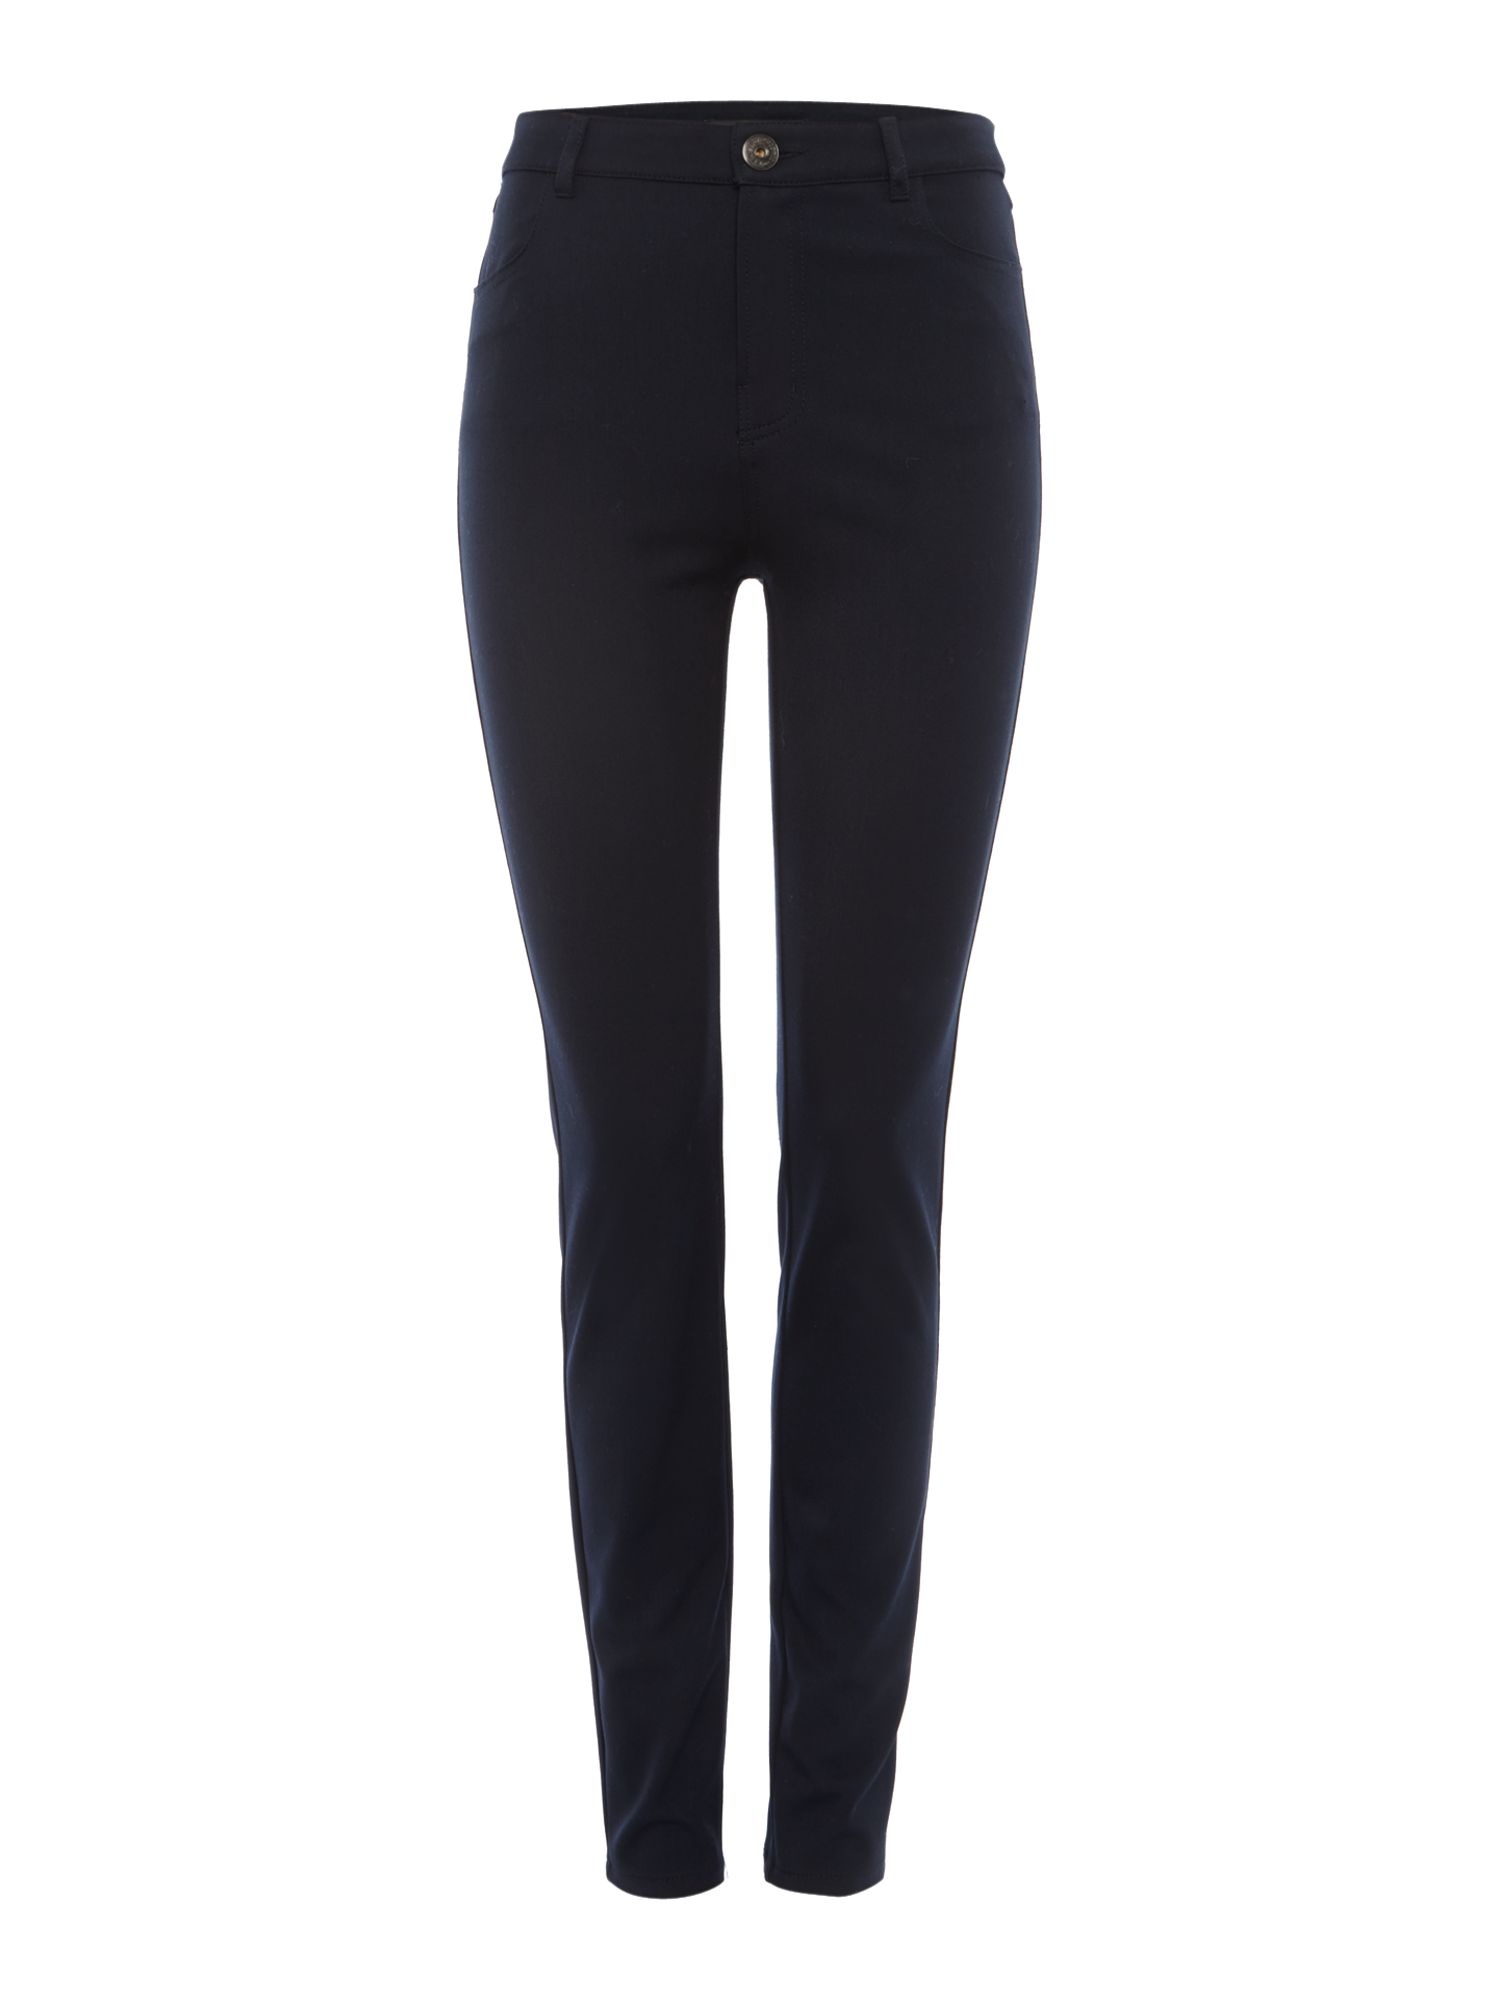 Adorni tech stretch trouser